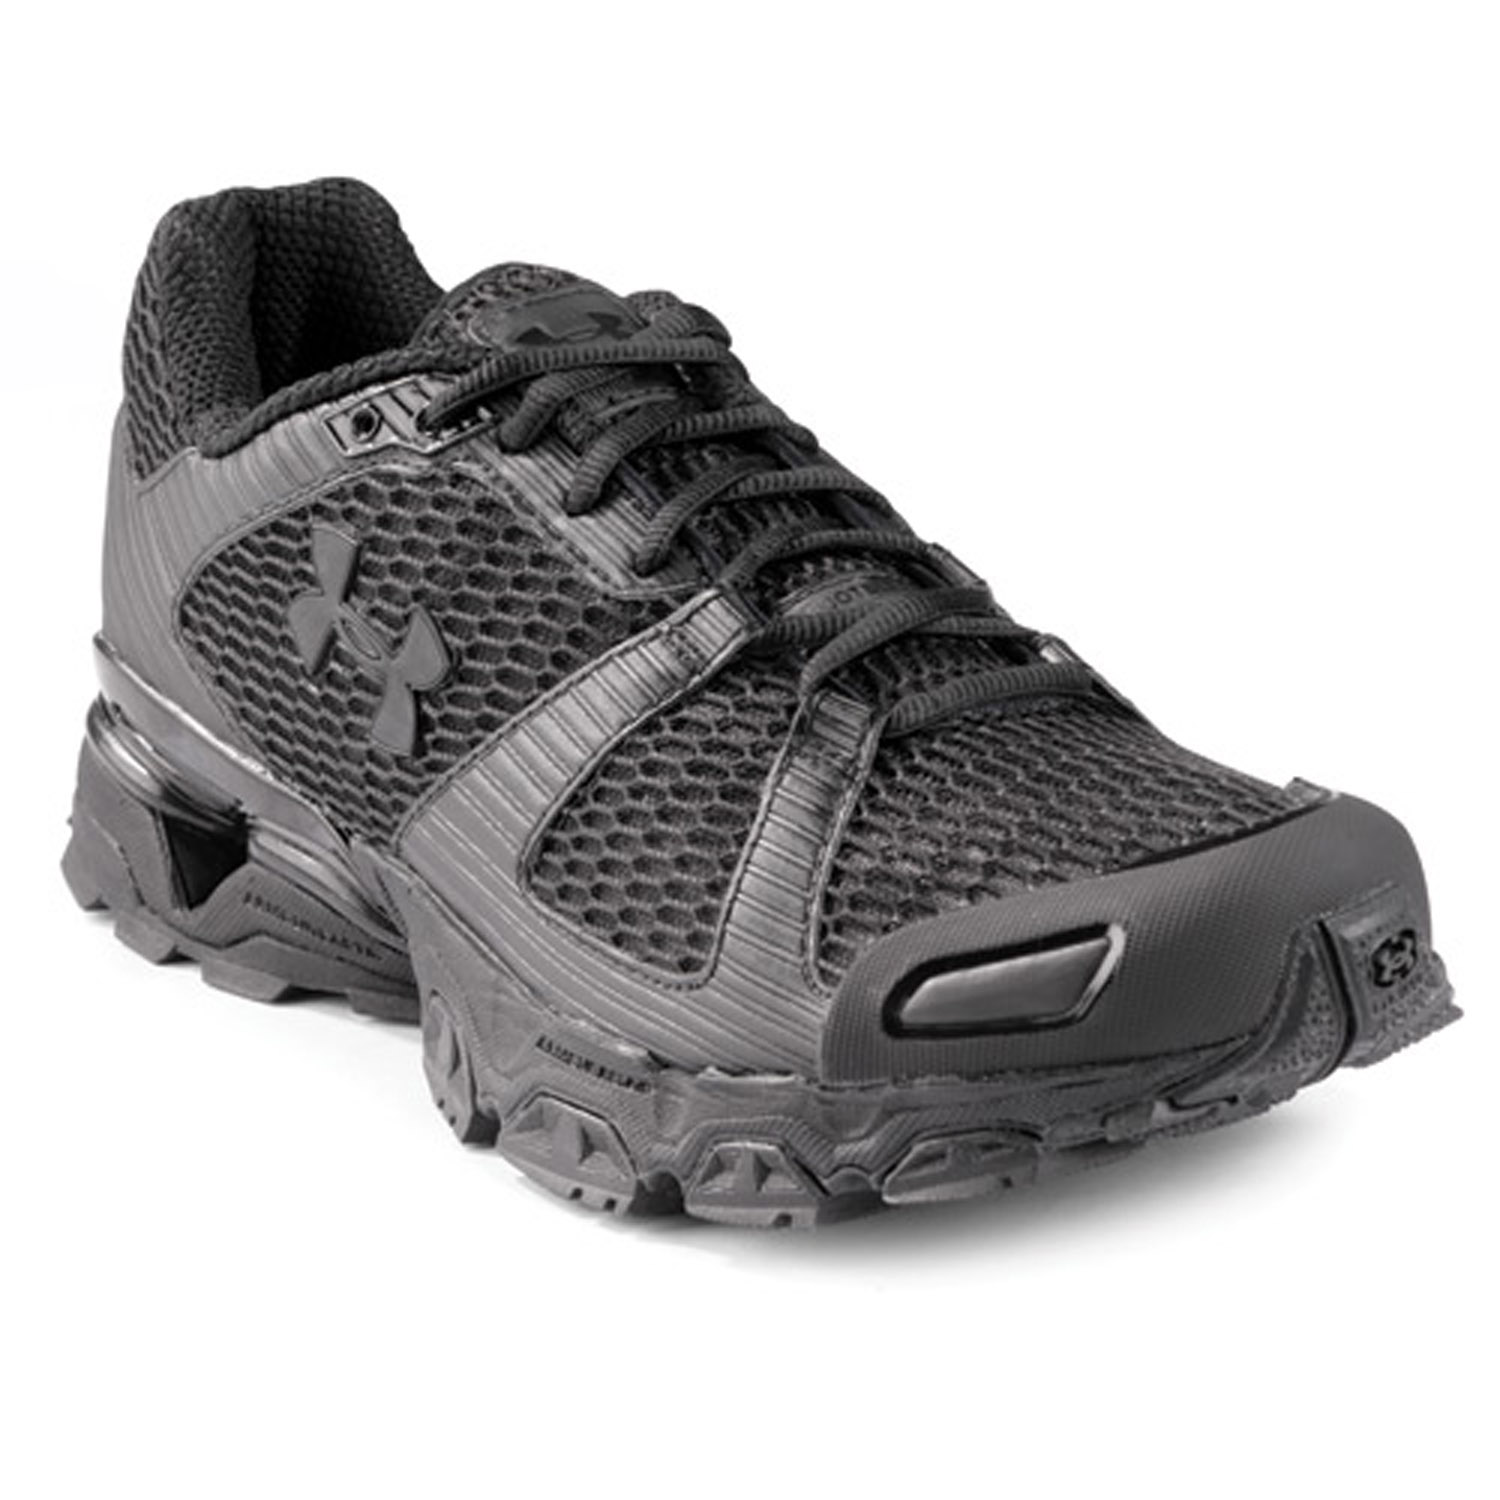 Under Armour Cartilage Shoes Review